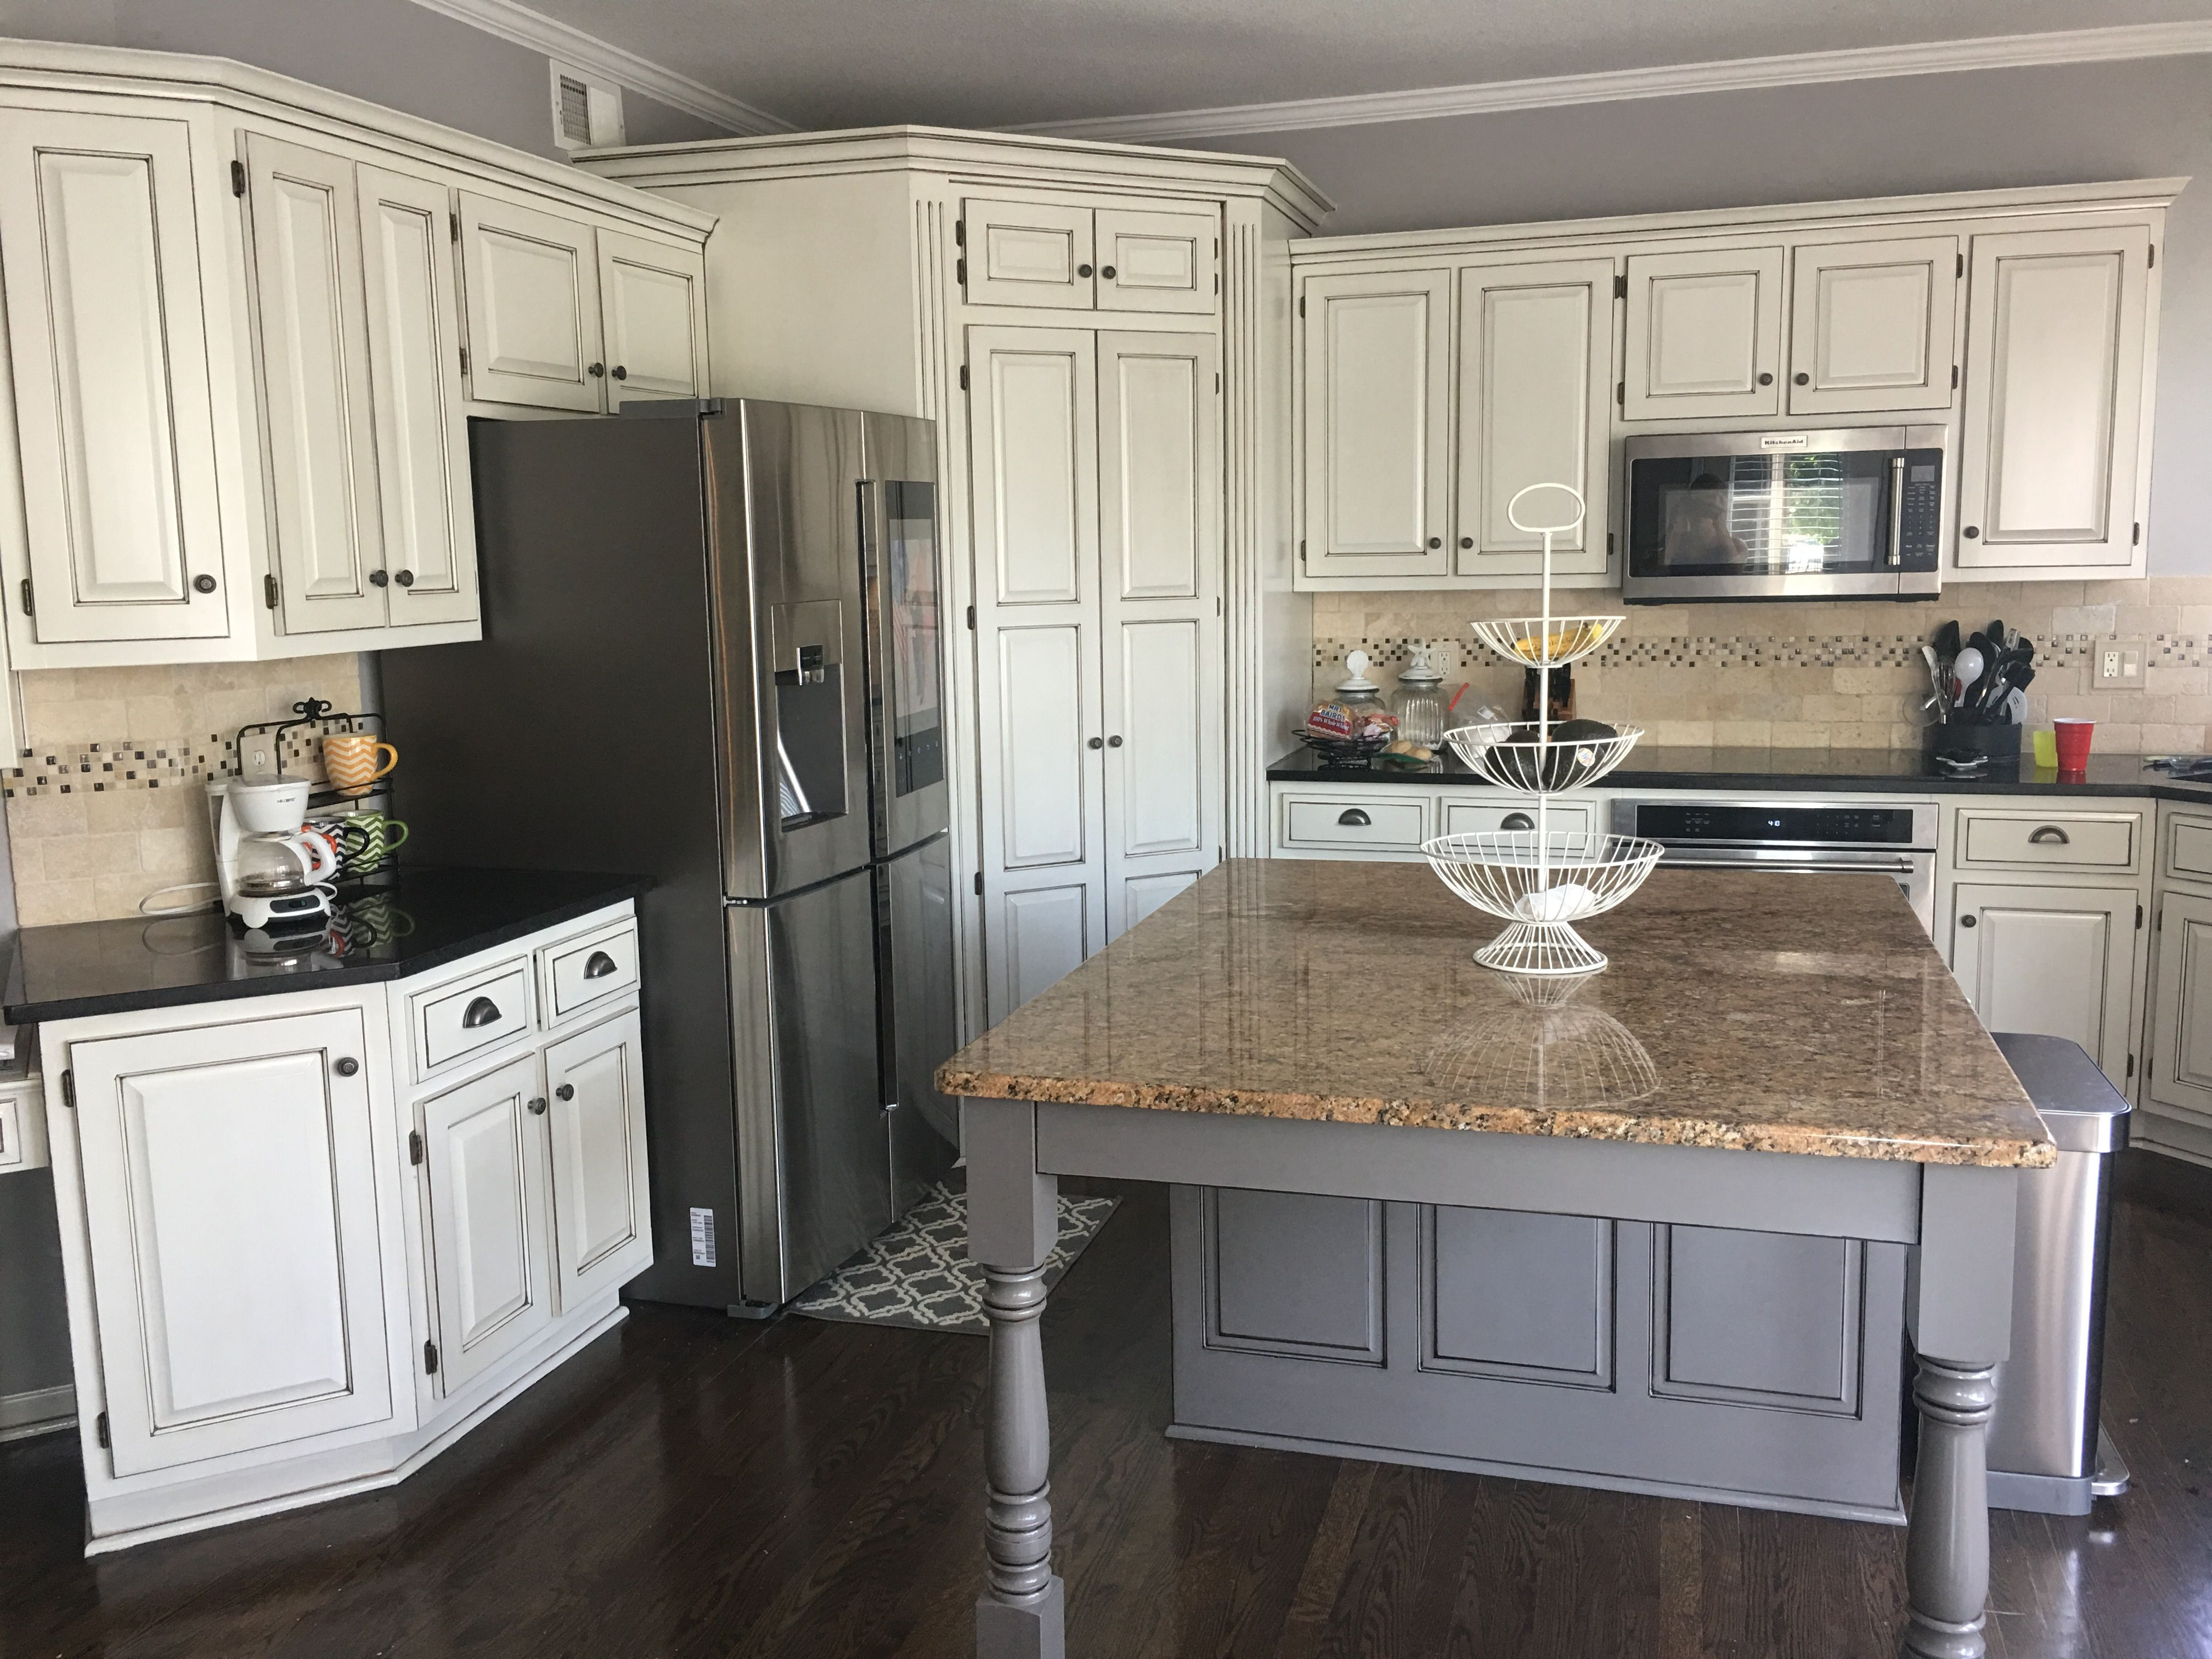 kitchen remodel glazed white cabinets black granite with grey island hardware ordered from on kitchen cabinets grey and white id=94096